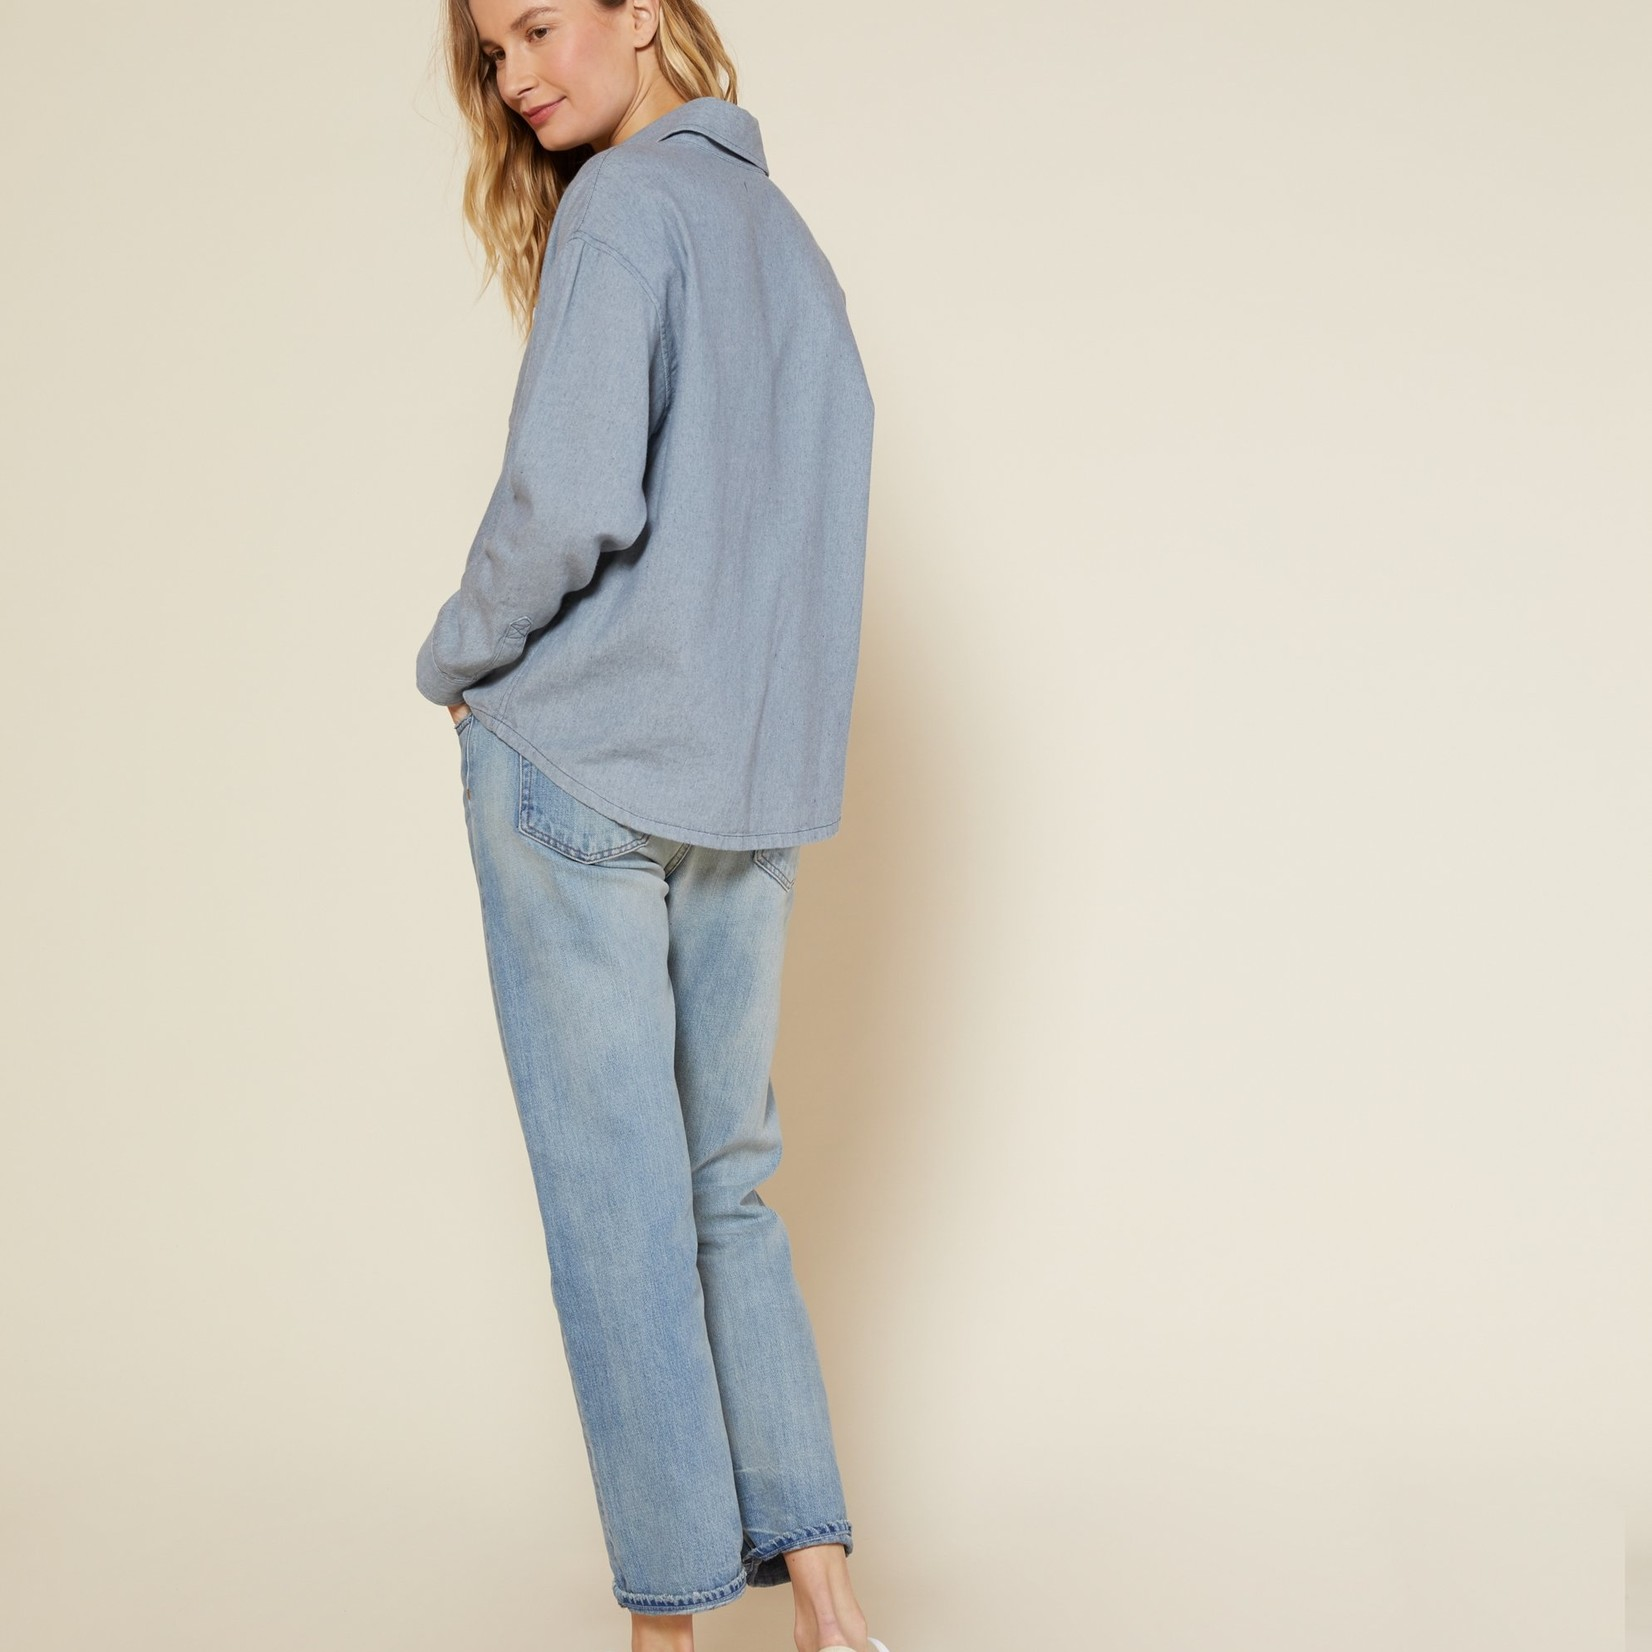 Outerknown Outerknown NDP Boxy Chambray Shirt